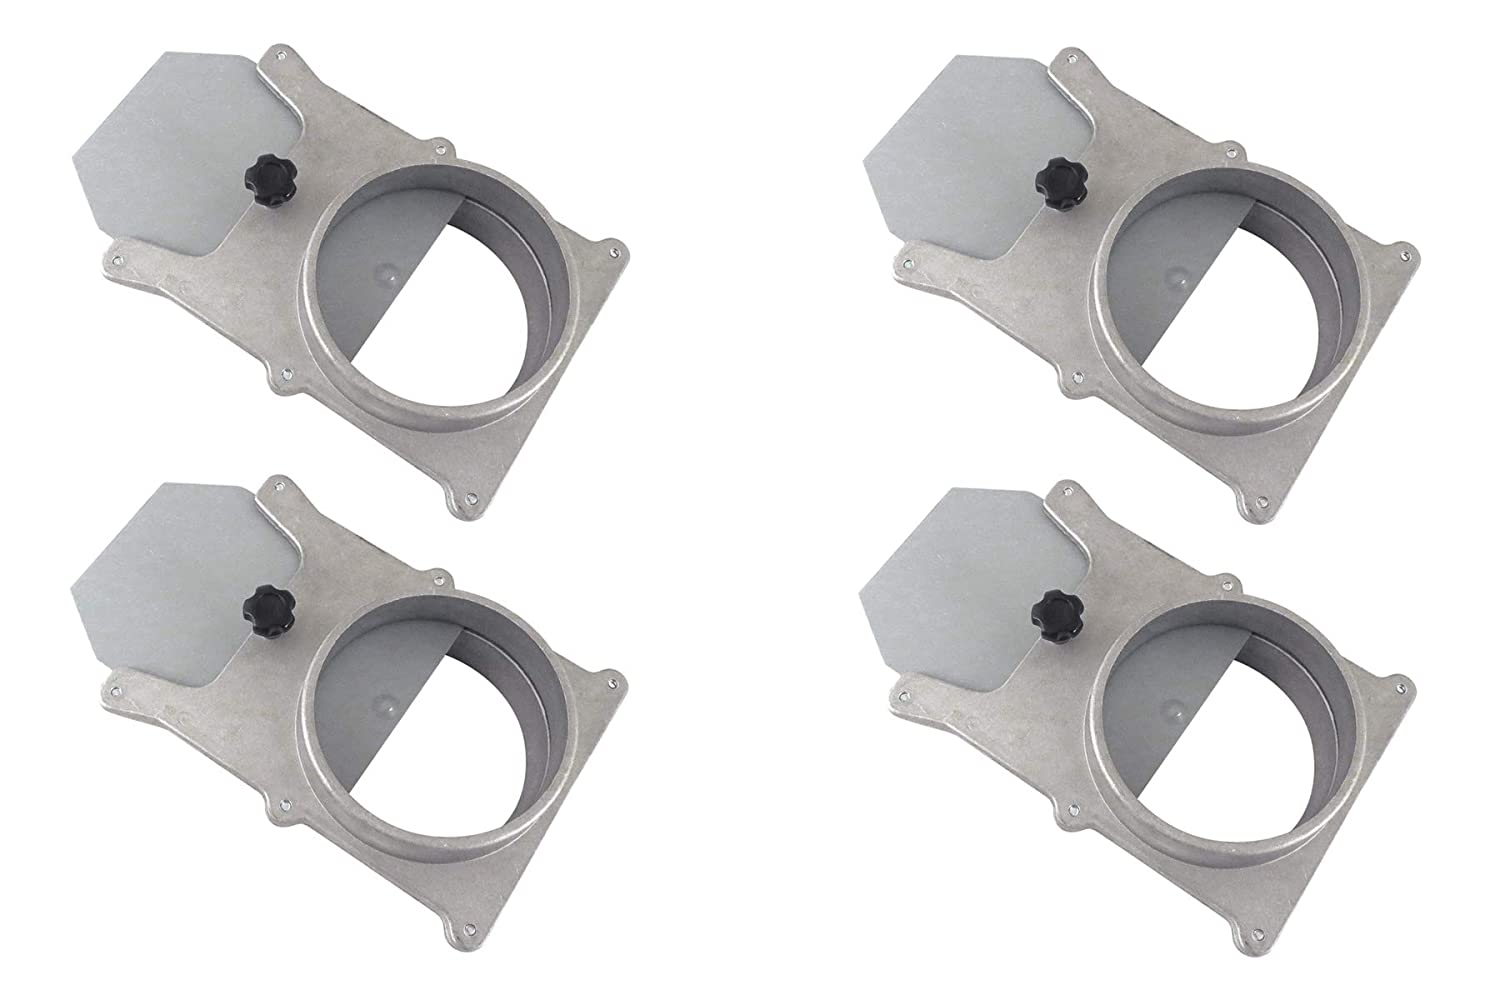 Taytools 278567 Set of 4 each 6 OD Blast Gates Self Cleaning No Clog Aluminum for Dust Collection System